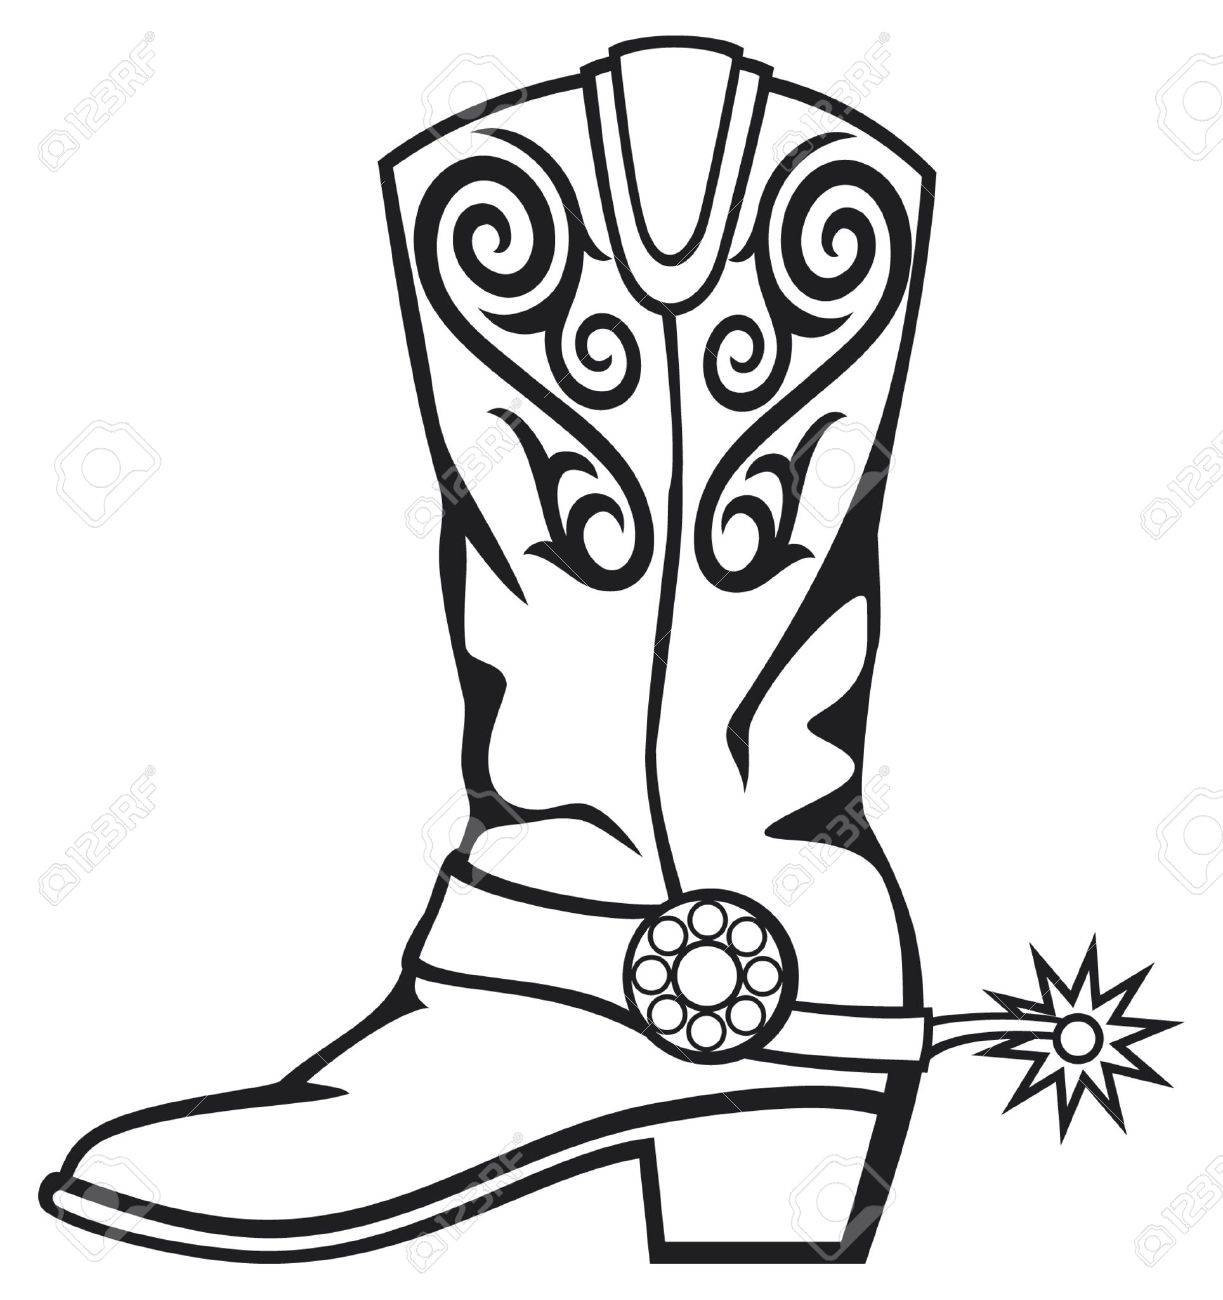 Cowgirl boots clipart black and white clip art royalty free library Cowboy boots clipart black and white 5 » Clipart Station clip art royalty free library